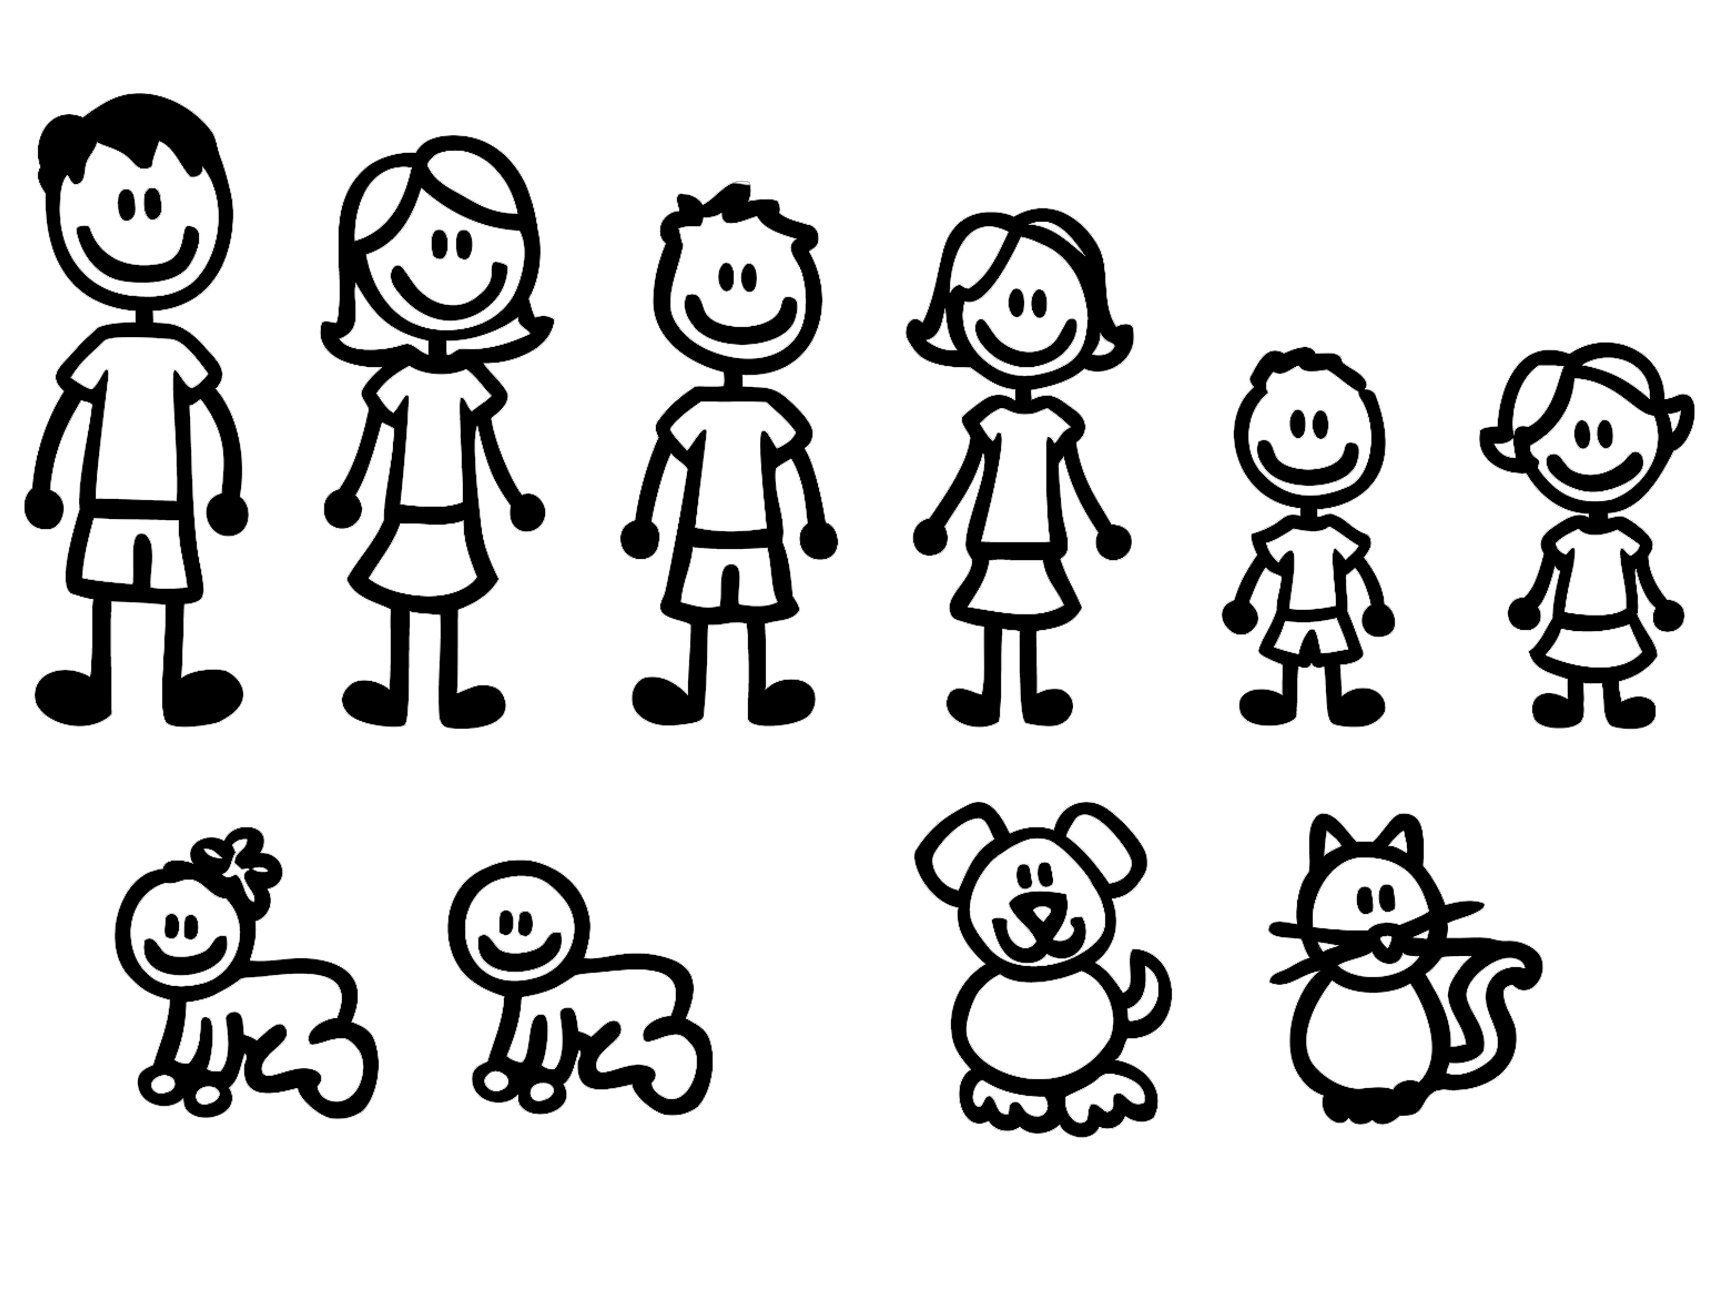 10 Stick Figure Family Your Stick Figure Family Can Be